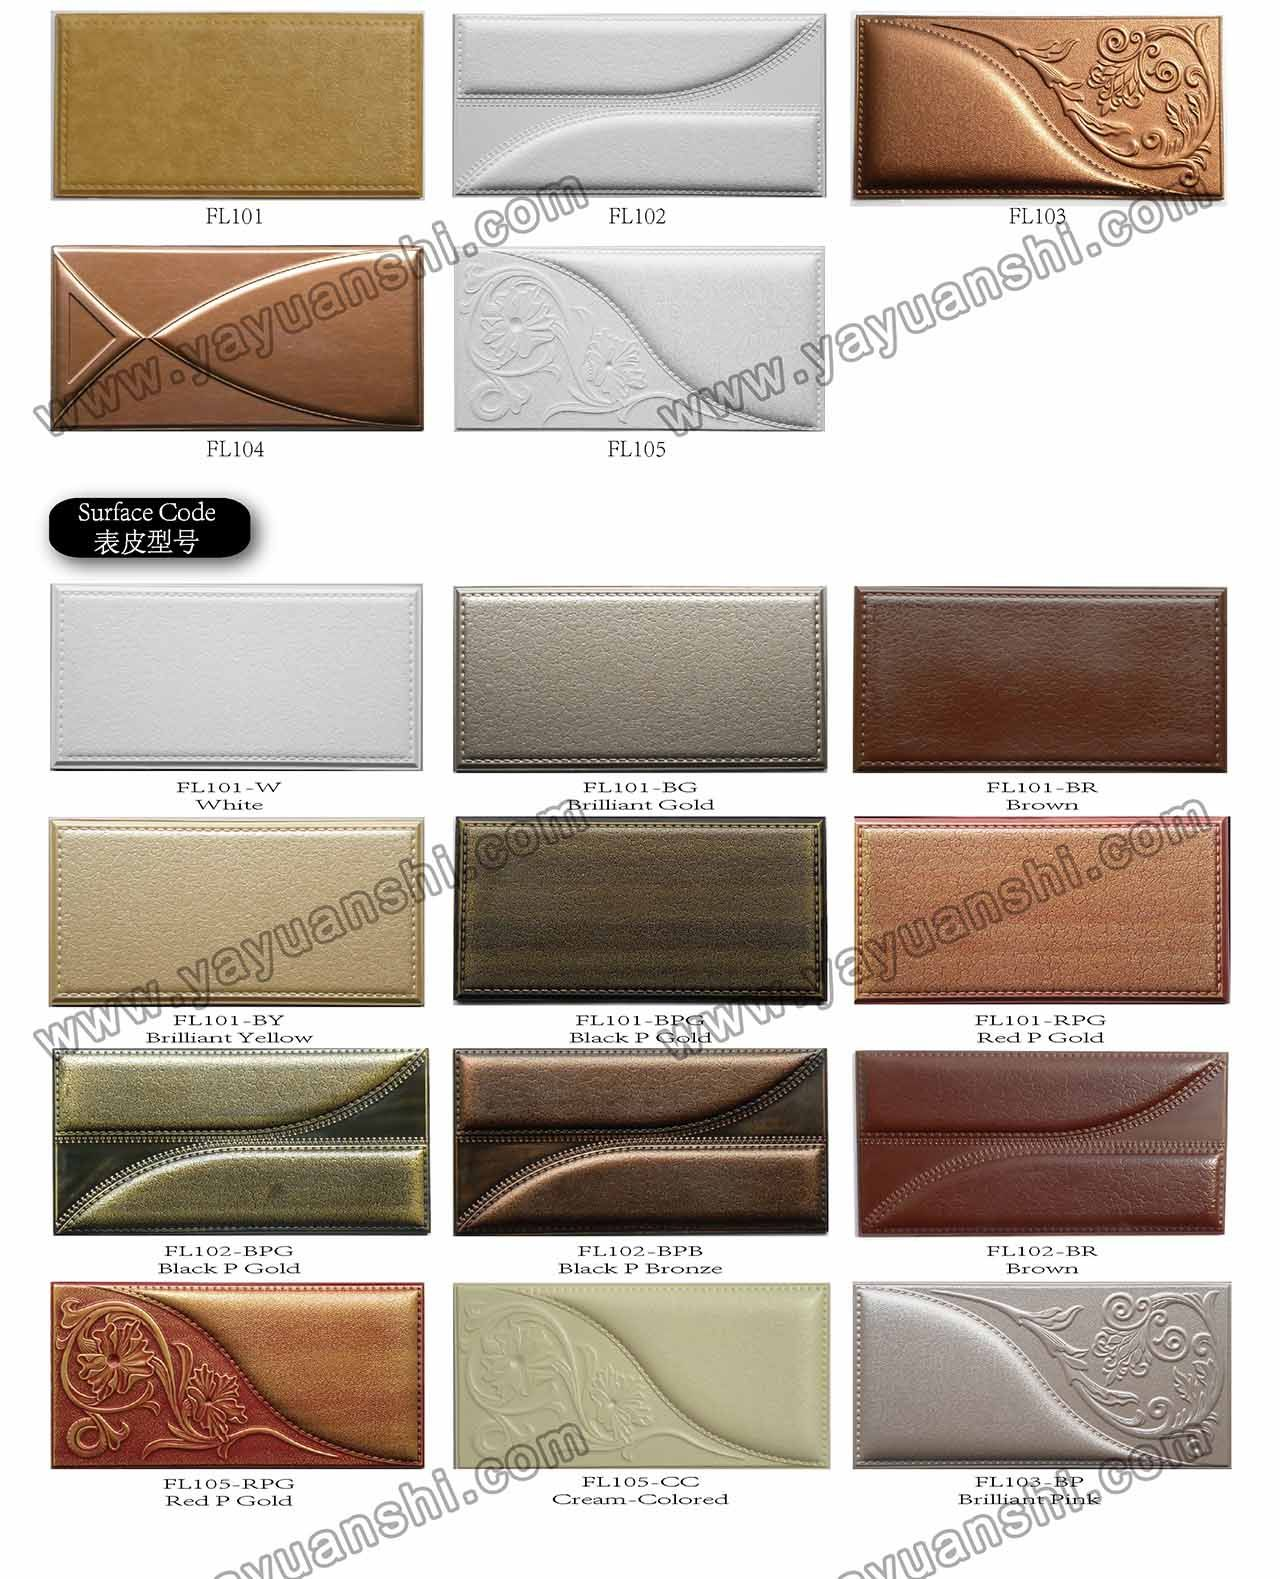 Yayuanshi 3D Leather Panel, Faux Leather tiles, 3D Leather Ceiling ...